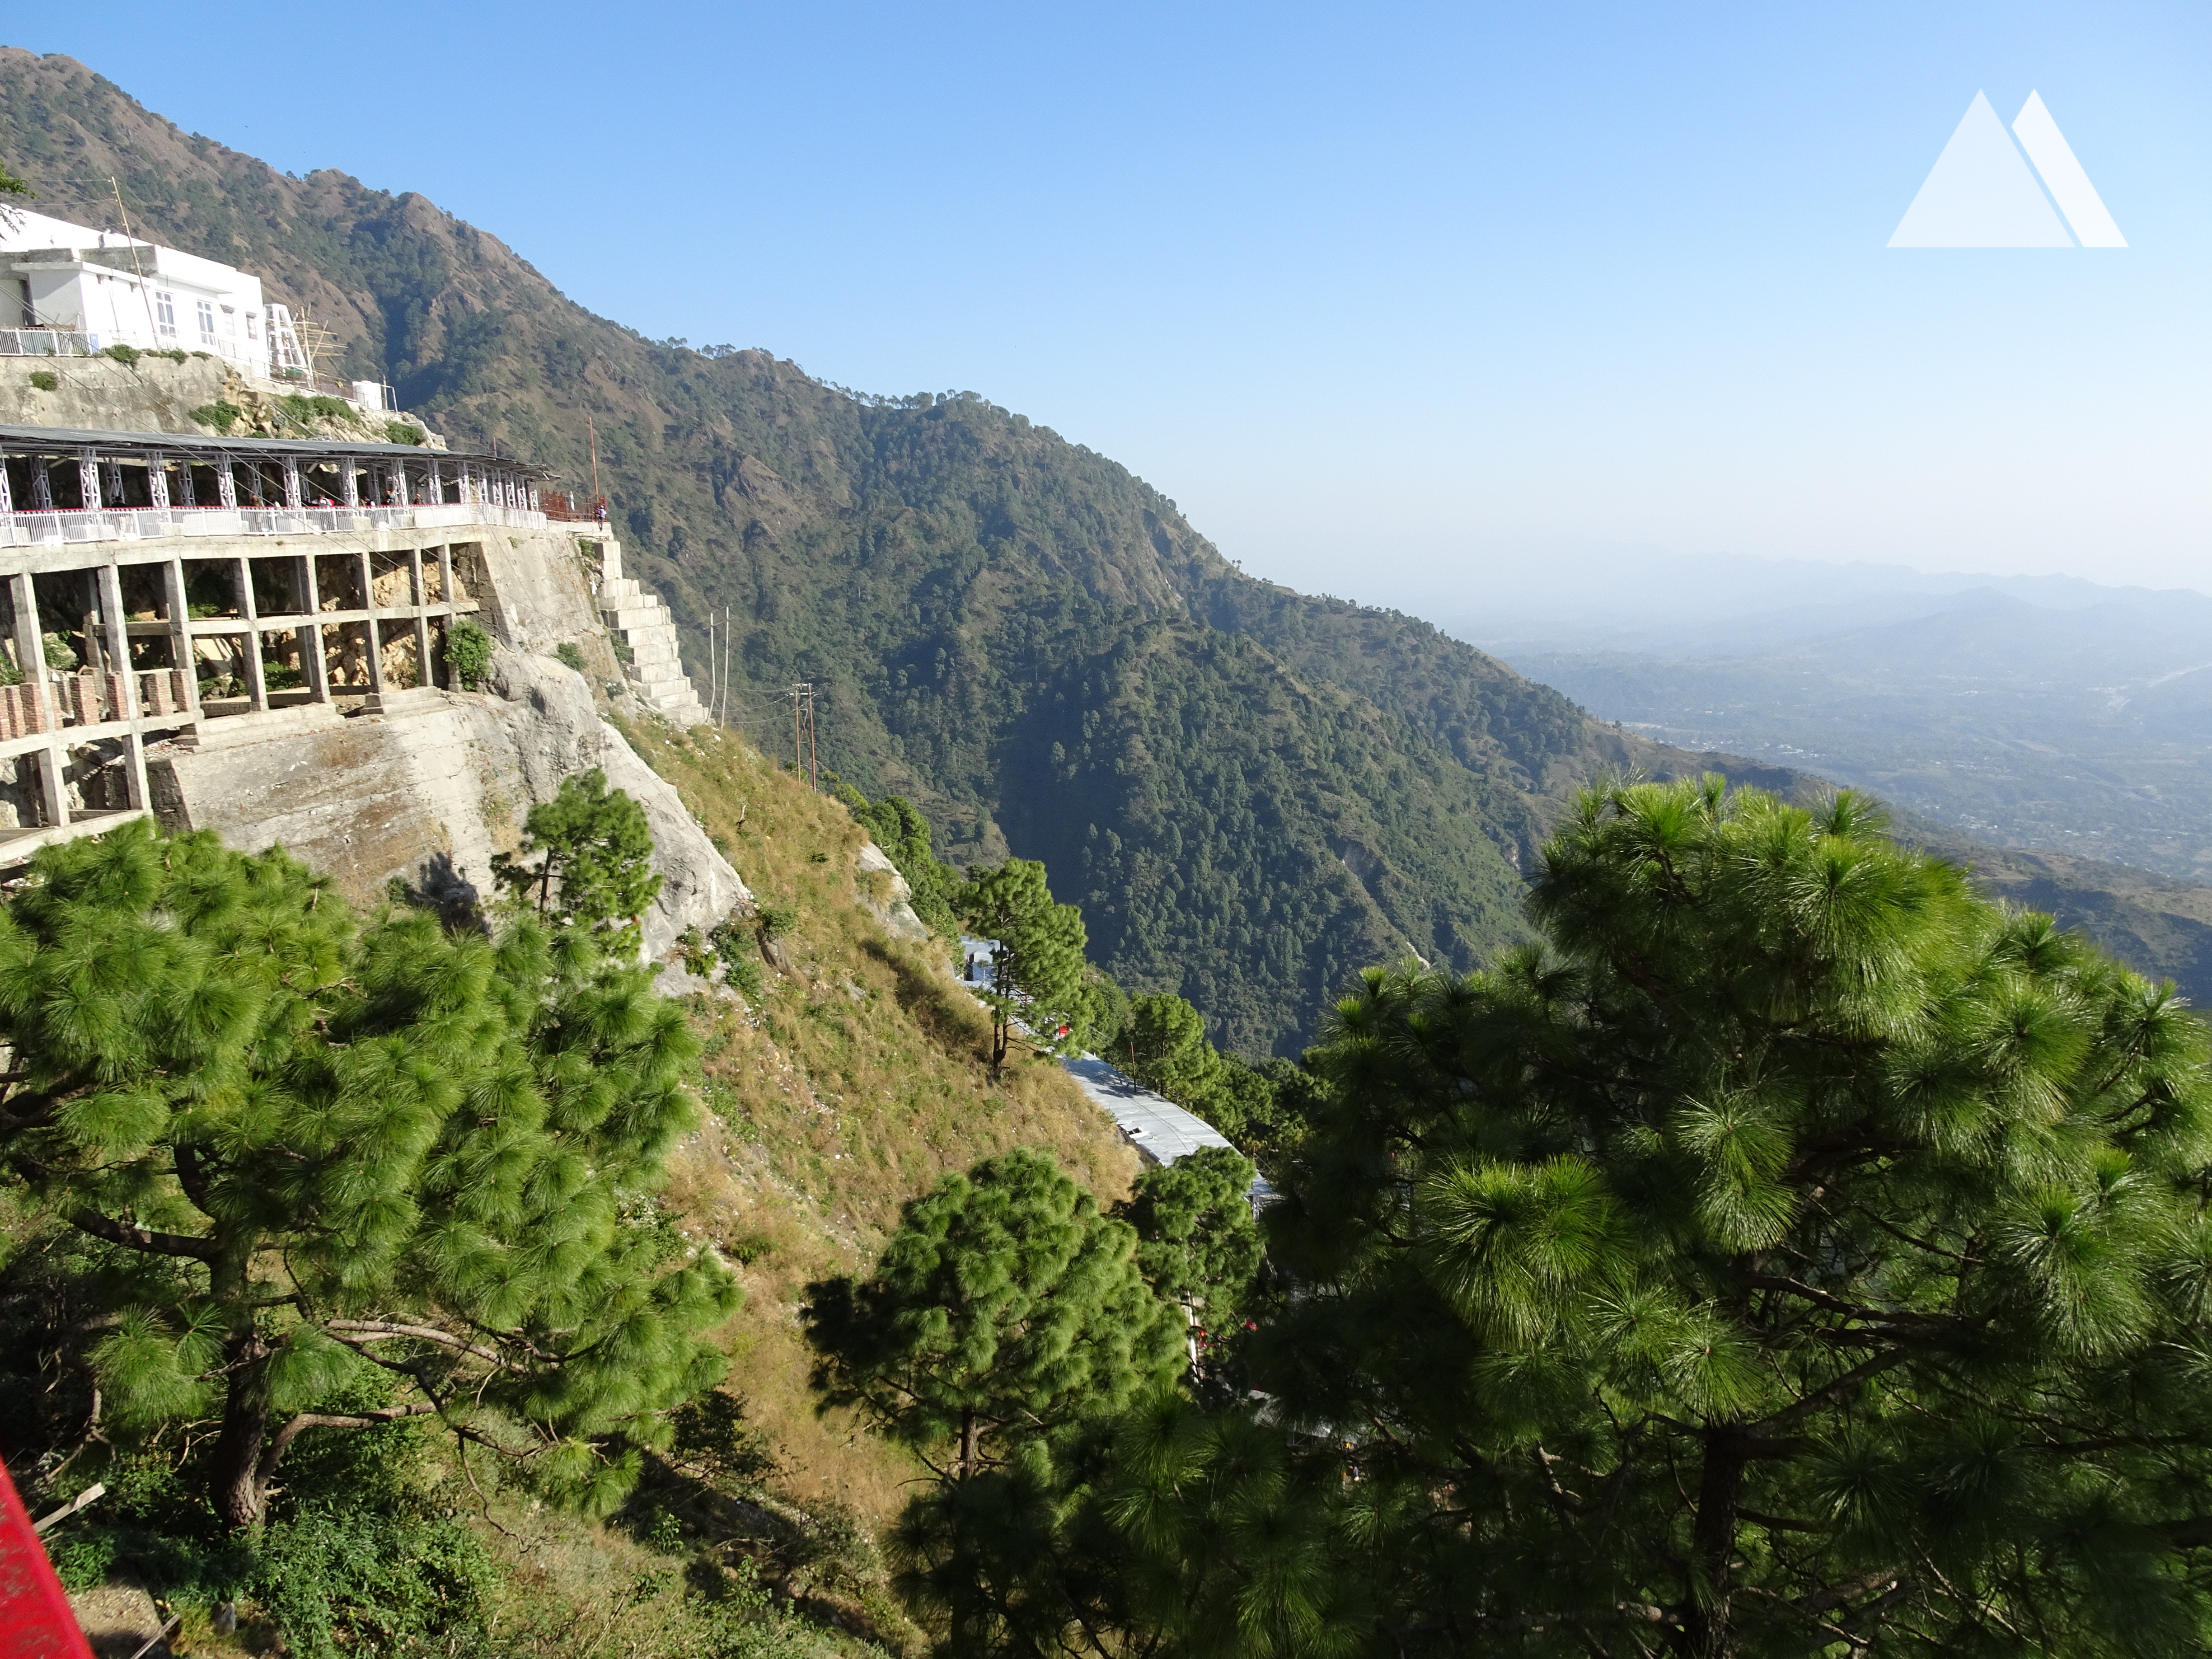 vaishno devi road with Trek Route To Shri Mata Vaishno Devi Shrine 2 82842 on Vaishnodevi Yatra Banganga To Charan Paduka also Watch further Famous Temples In Vrindavan also Dsc02017 3 together with Amarnath Temple Considered To Be One Of.